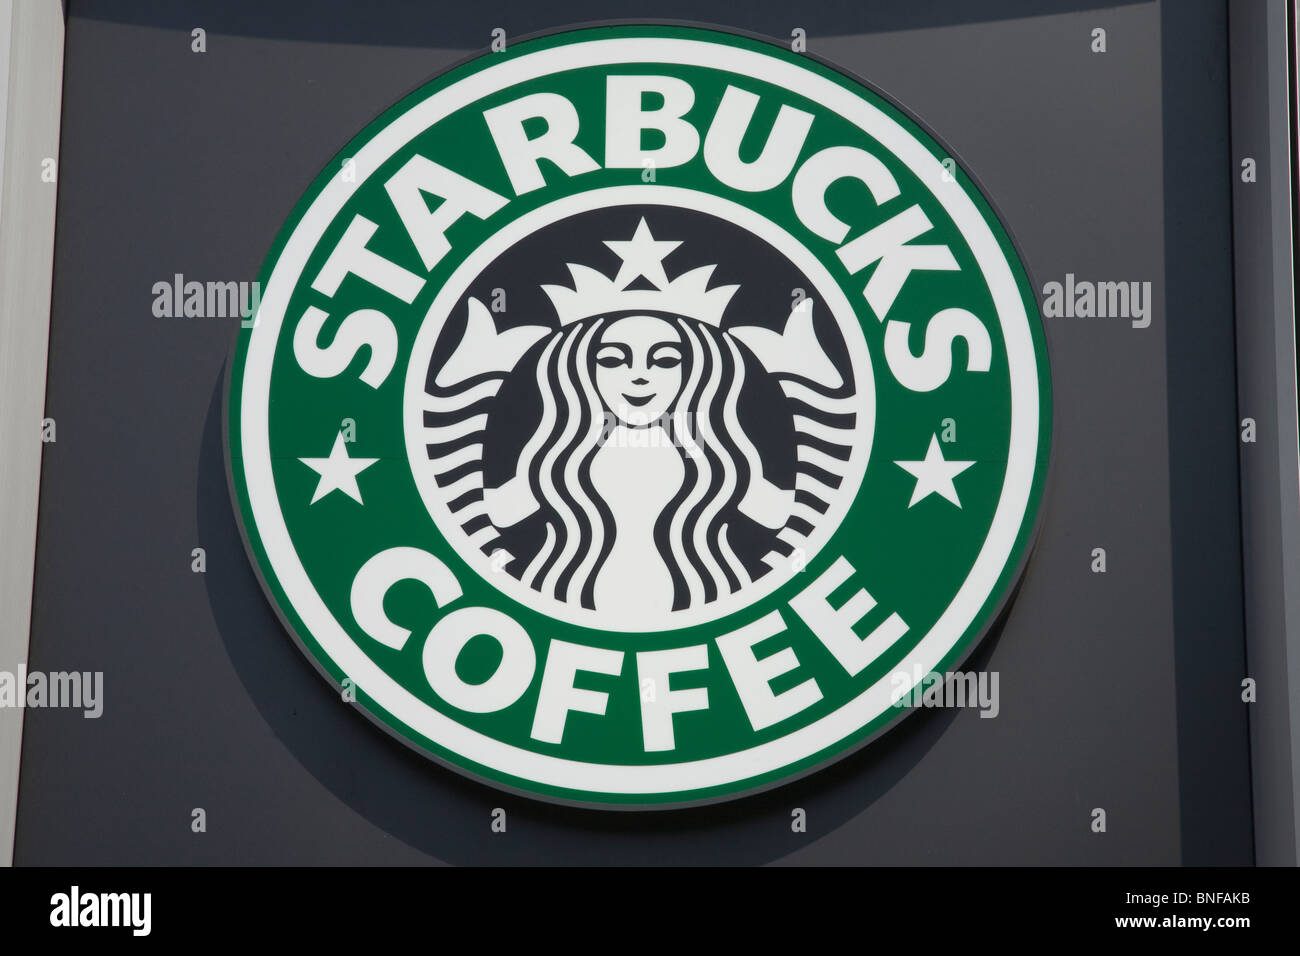 Starbucks Coffee Logo Stock Photos Starbucks Coffee Logo Stock